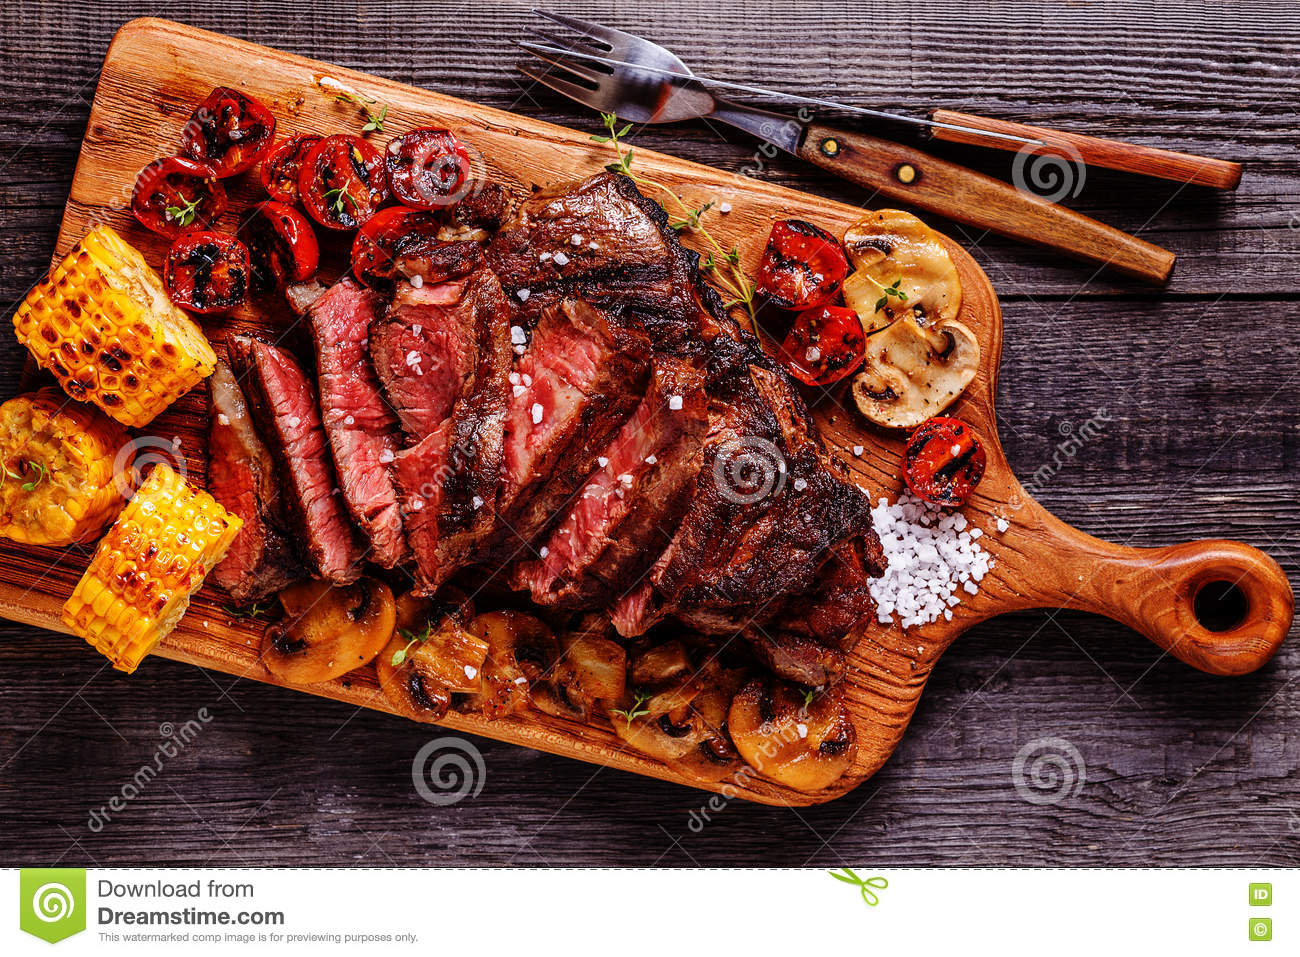 Beef steaks with grilled tomatoes, mushrooms and corn.